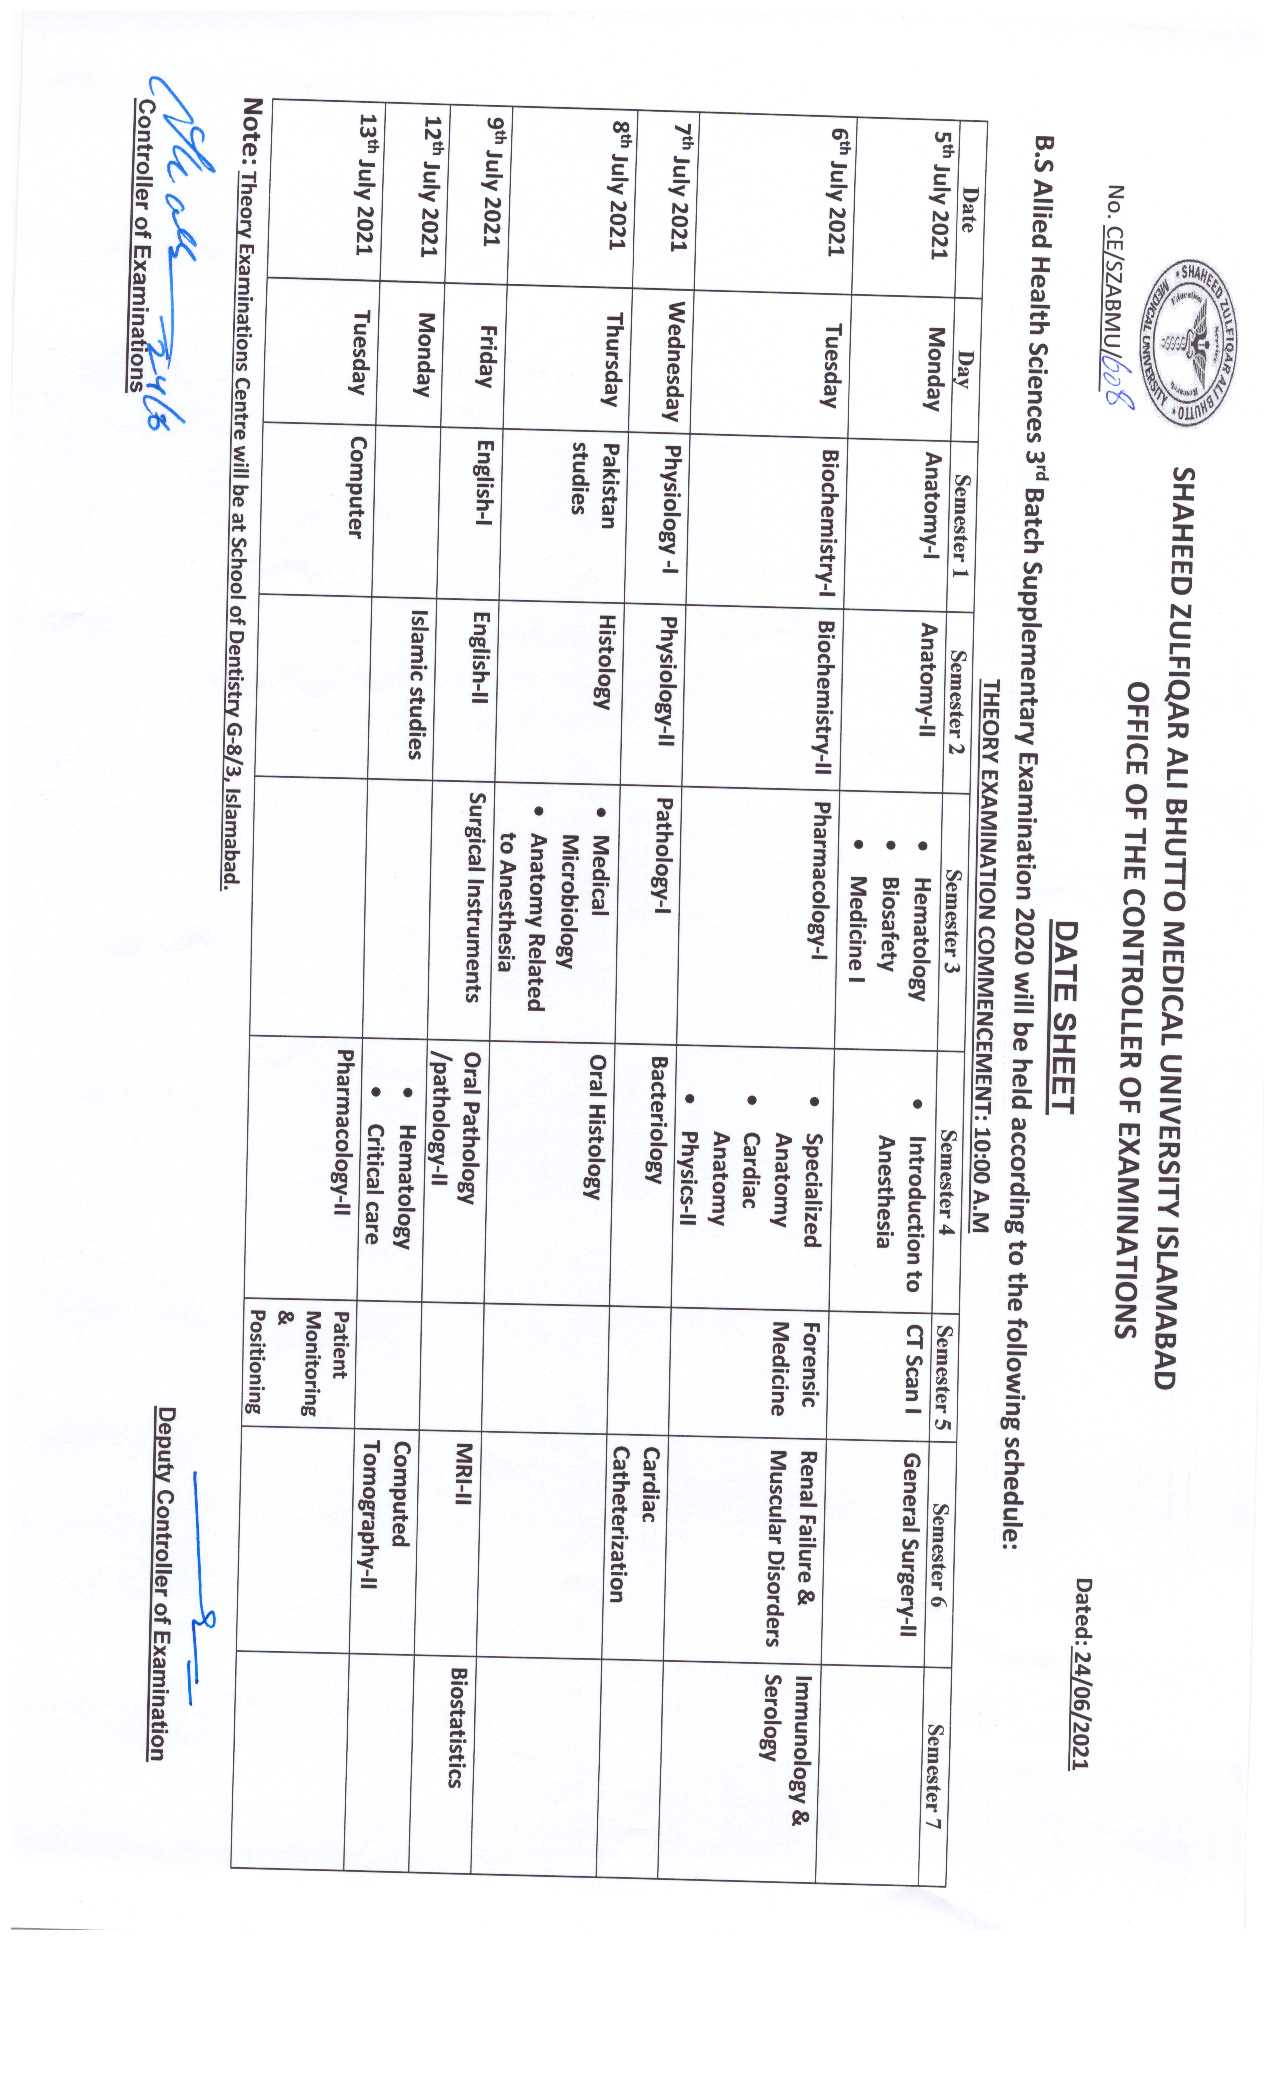 Date Sheet BS Allied Health Sciences 3rd Batch supplementary Examination 2020